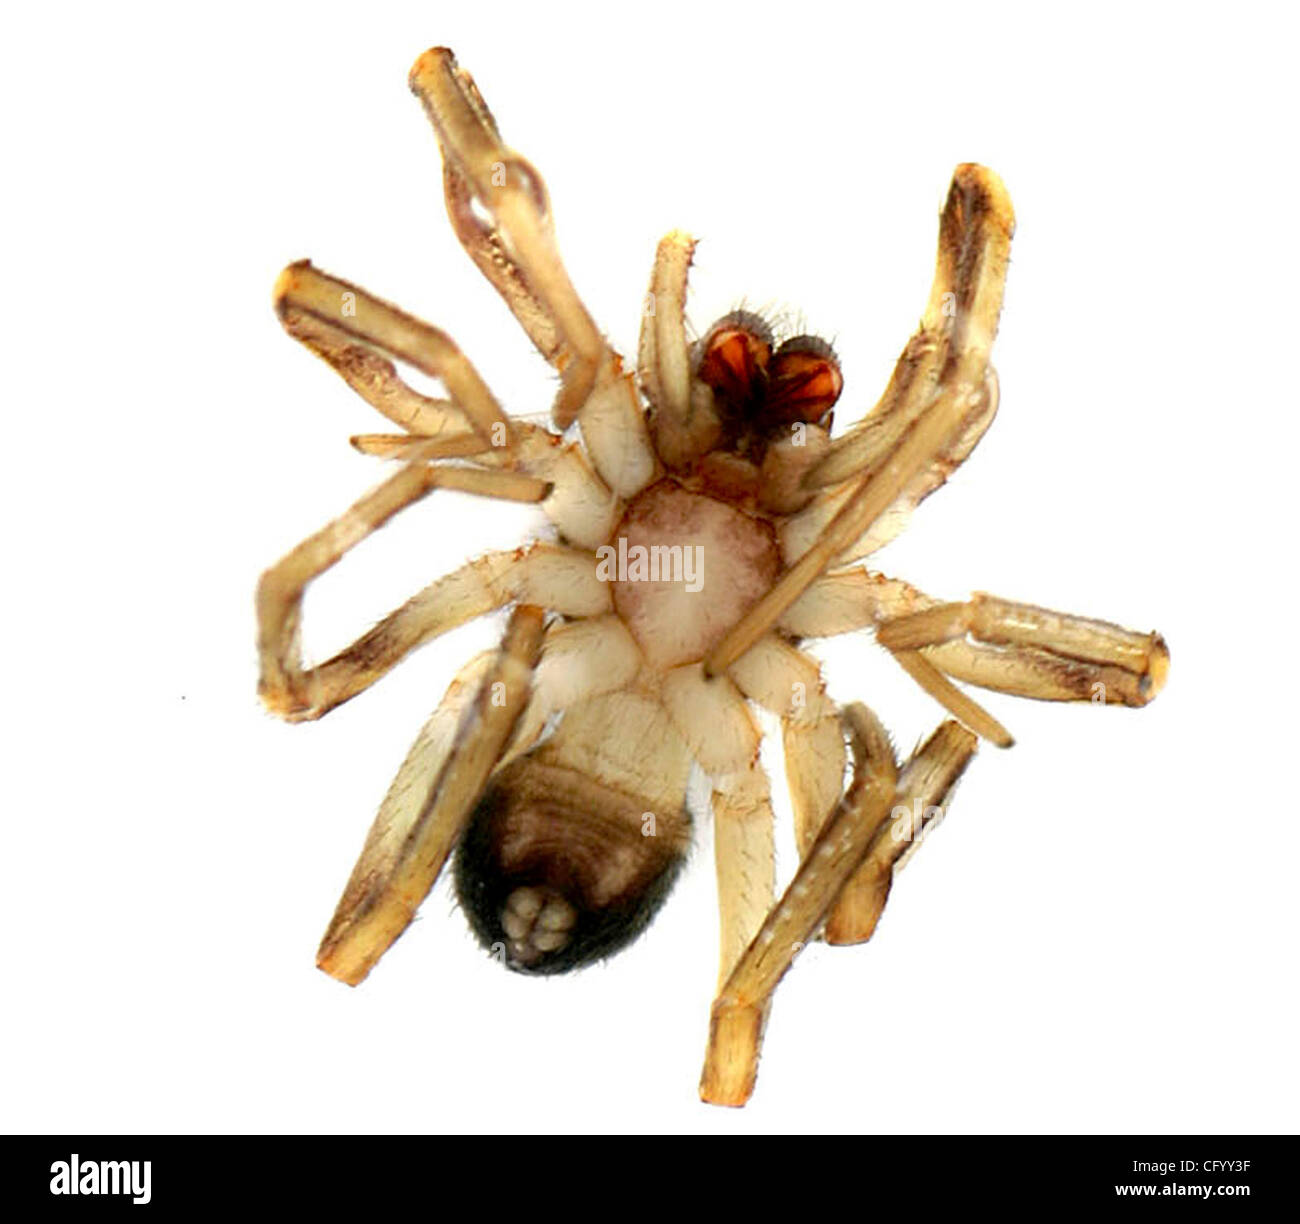 060107 - STUDIO - Preserved Brown Recluse Spider specimen with ...